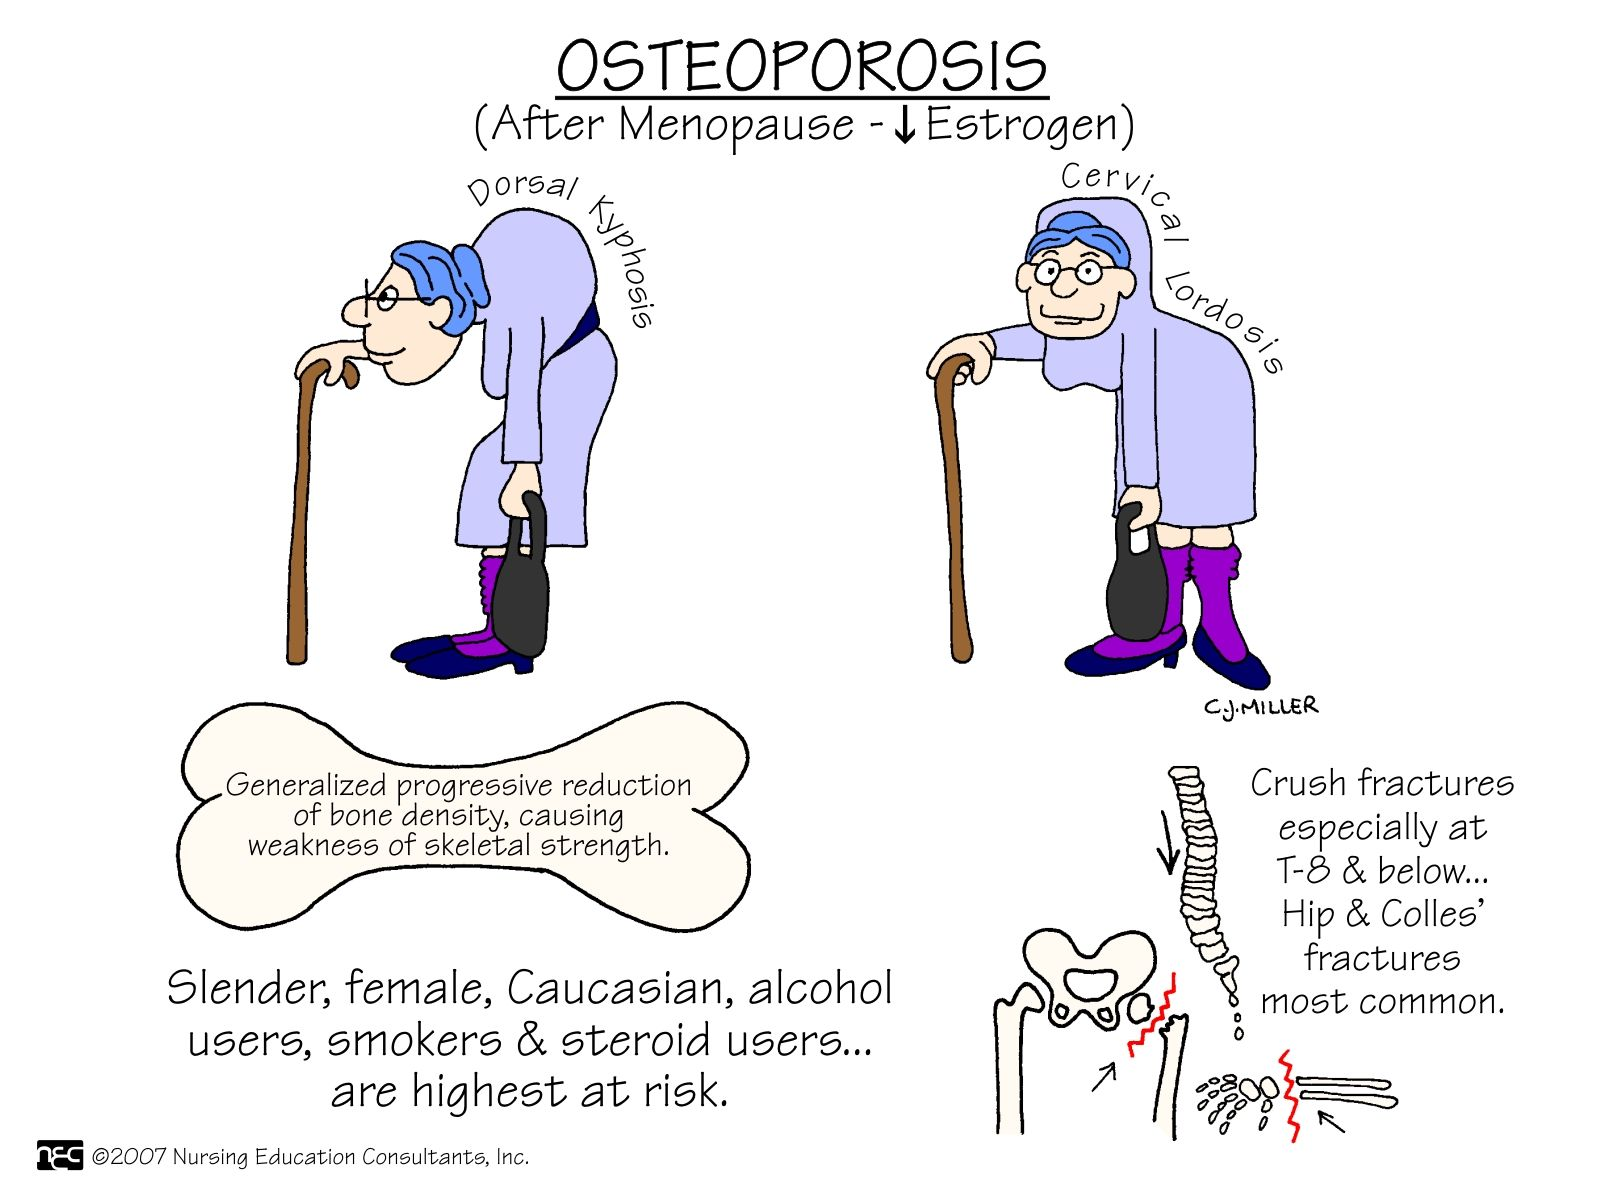 Osteoporosis Osteoporosis, which literally means porous bone, is a disease in which the density and quality of bone are reduced. As bones become more porous and fragile, the risk of fracture is greatly increased. The loss of bone occurs silently and progressively. Often there are no symptoms until the first fracture occurs.